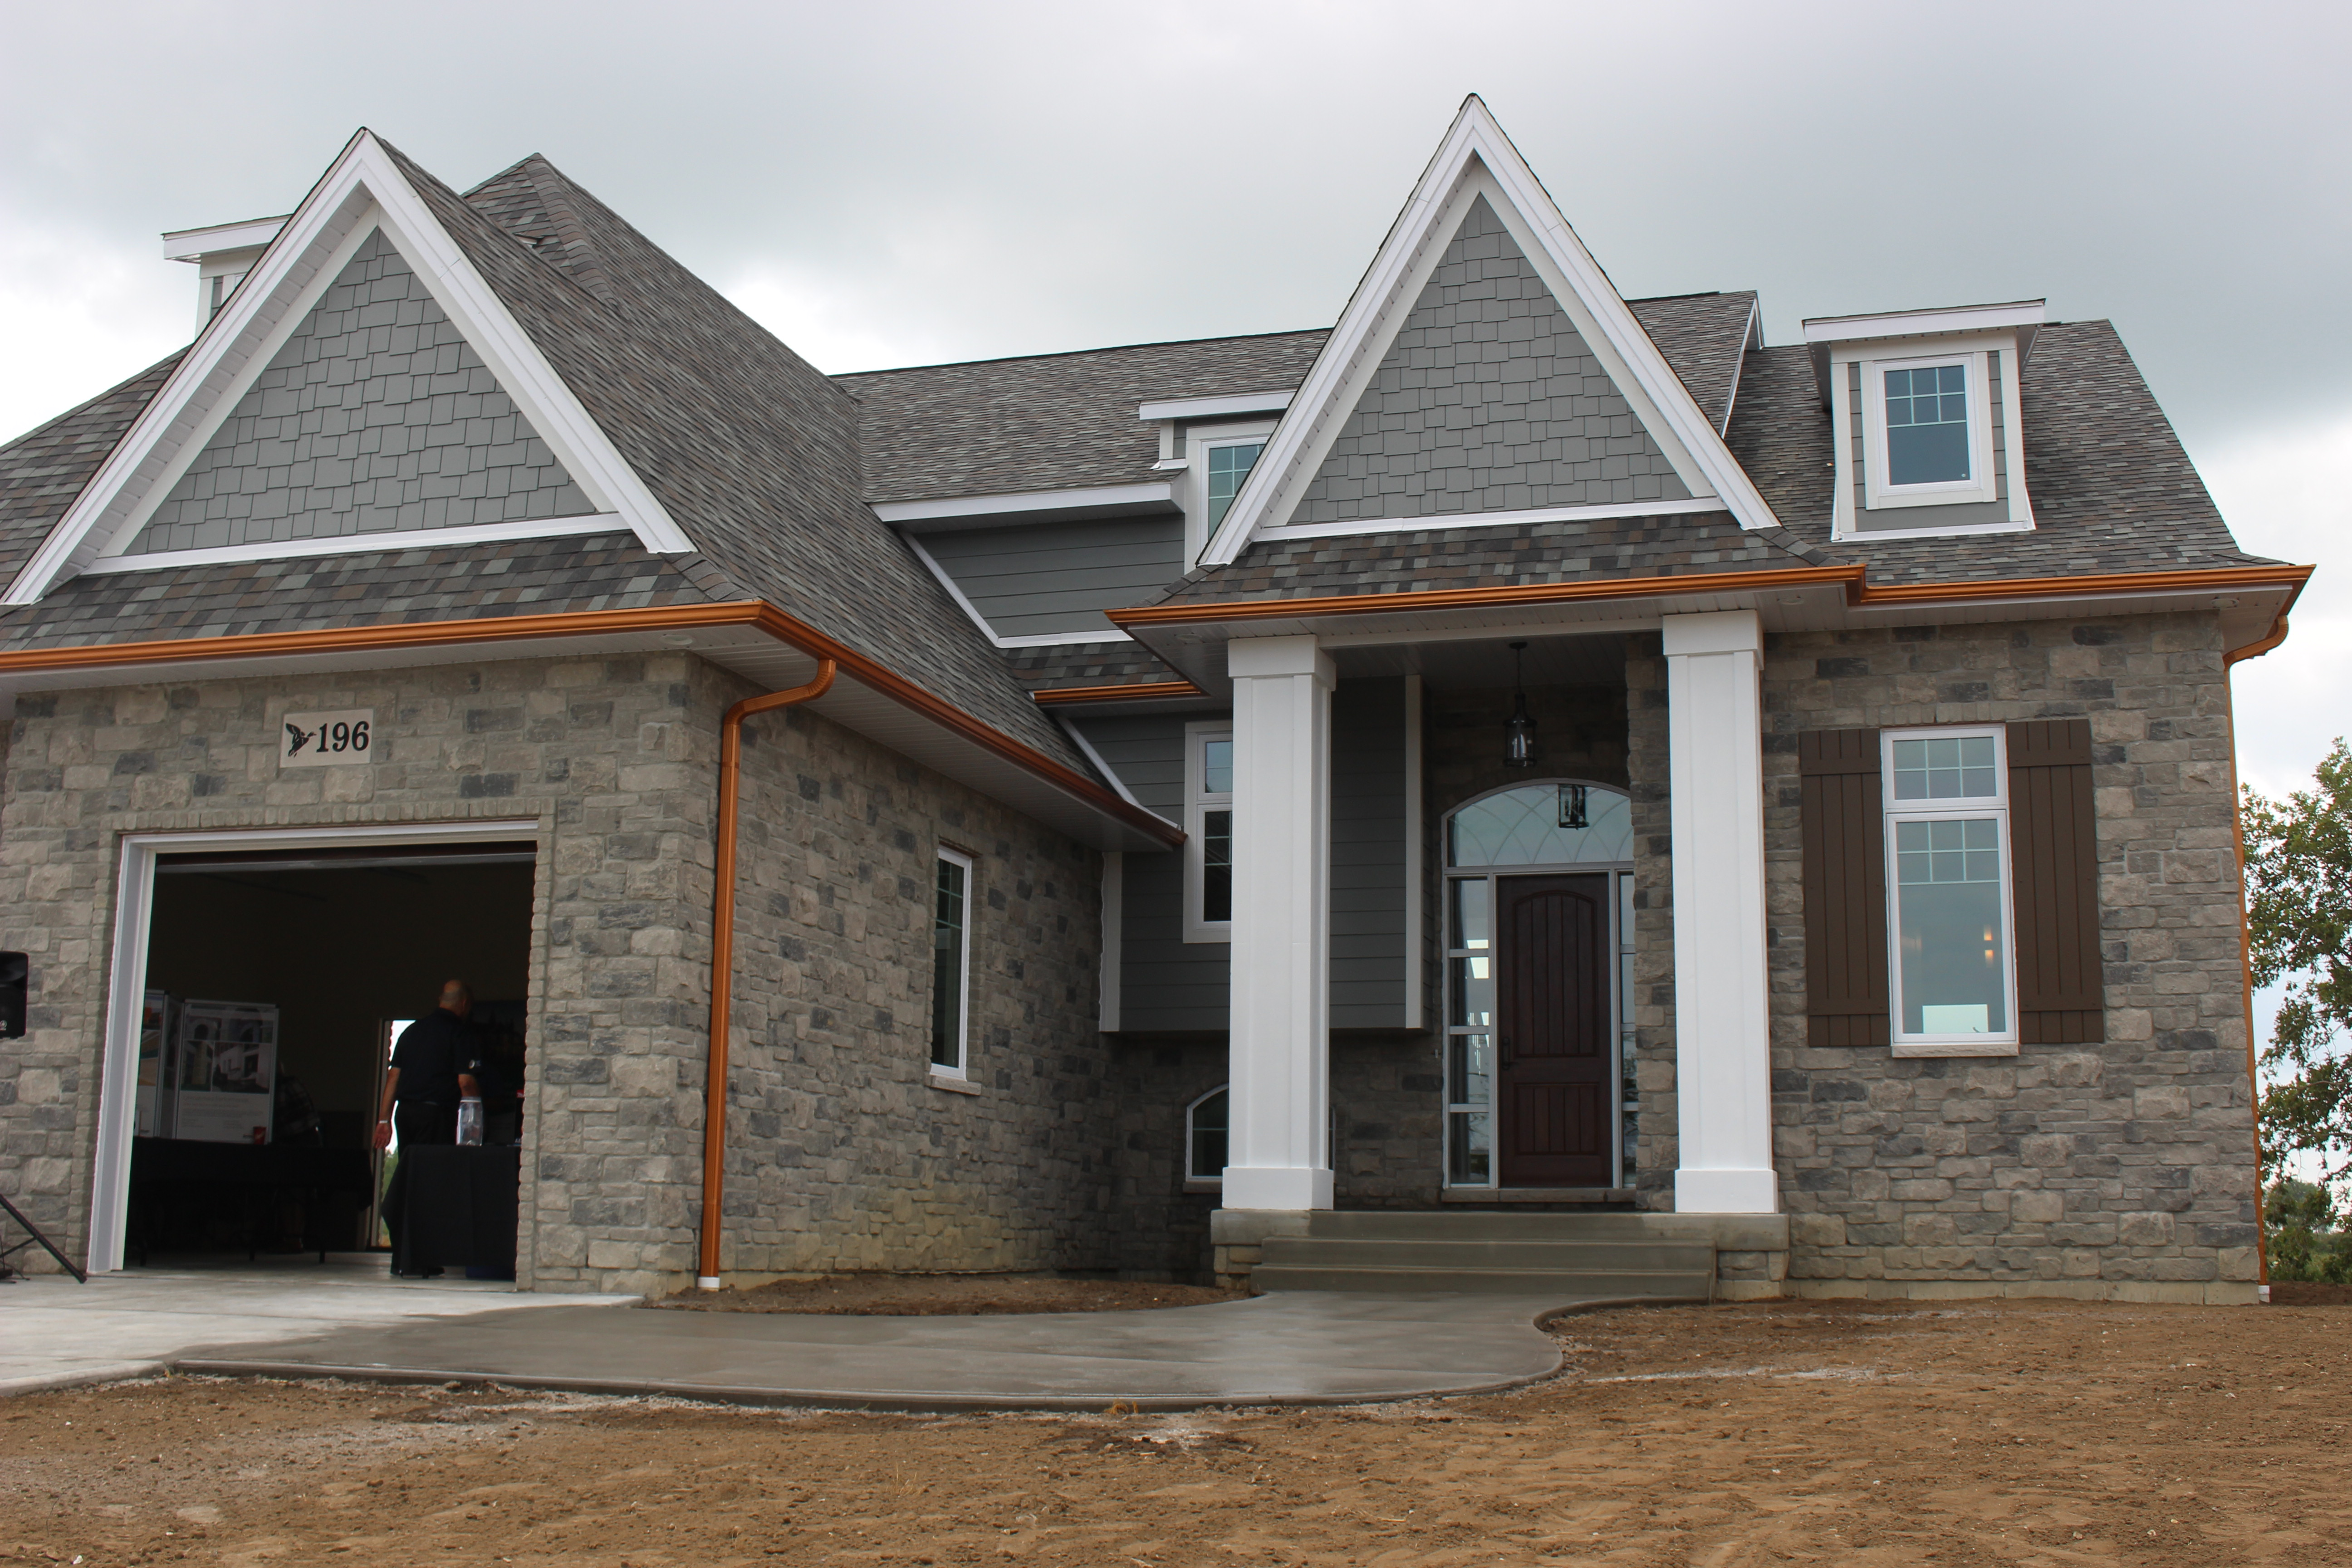 The regions first net-zero home is unveiled in Belle River, August 28, 2015. (Photo by Jason Viau)